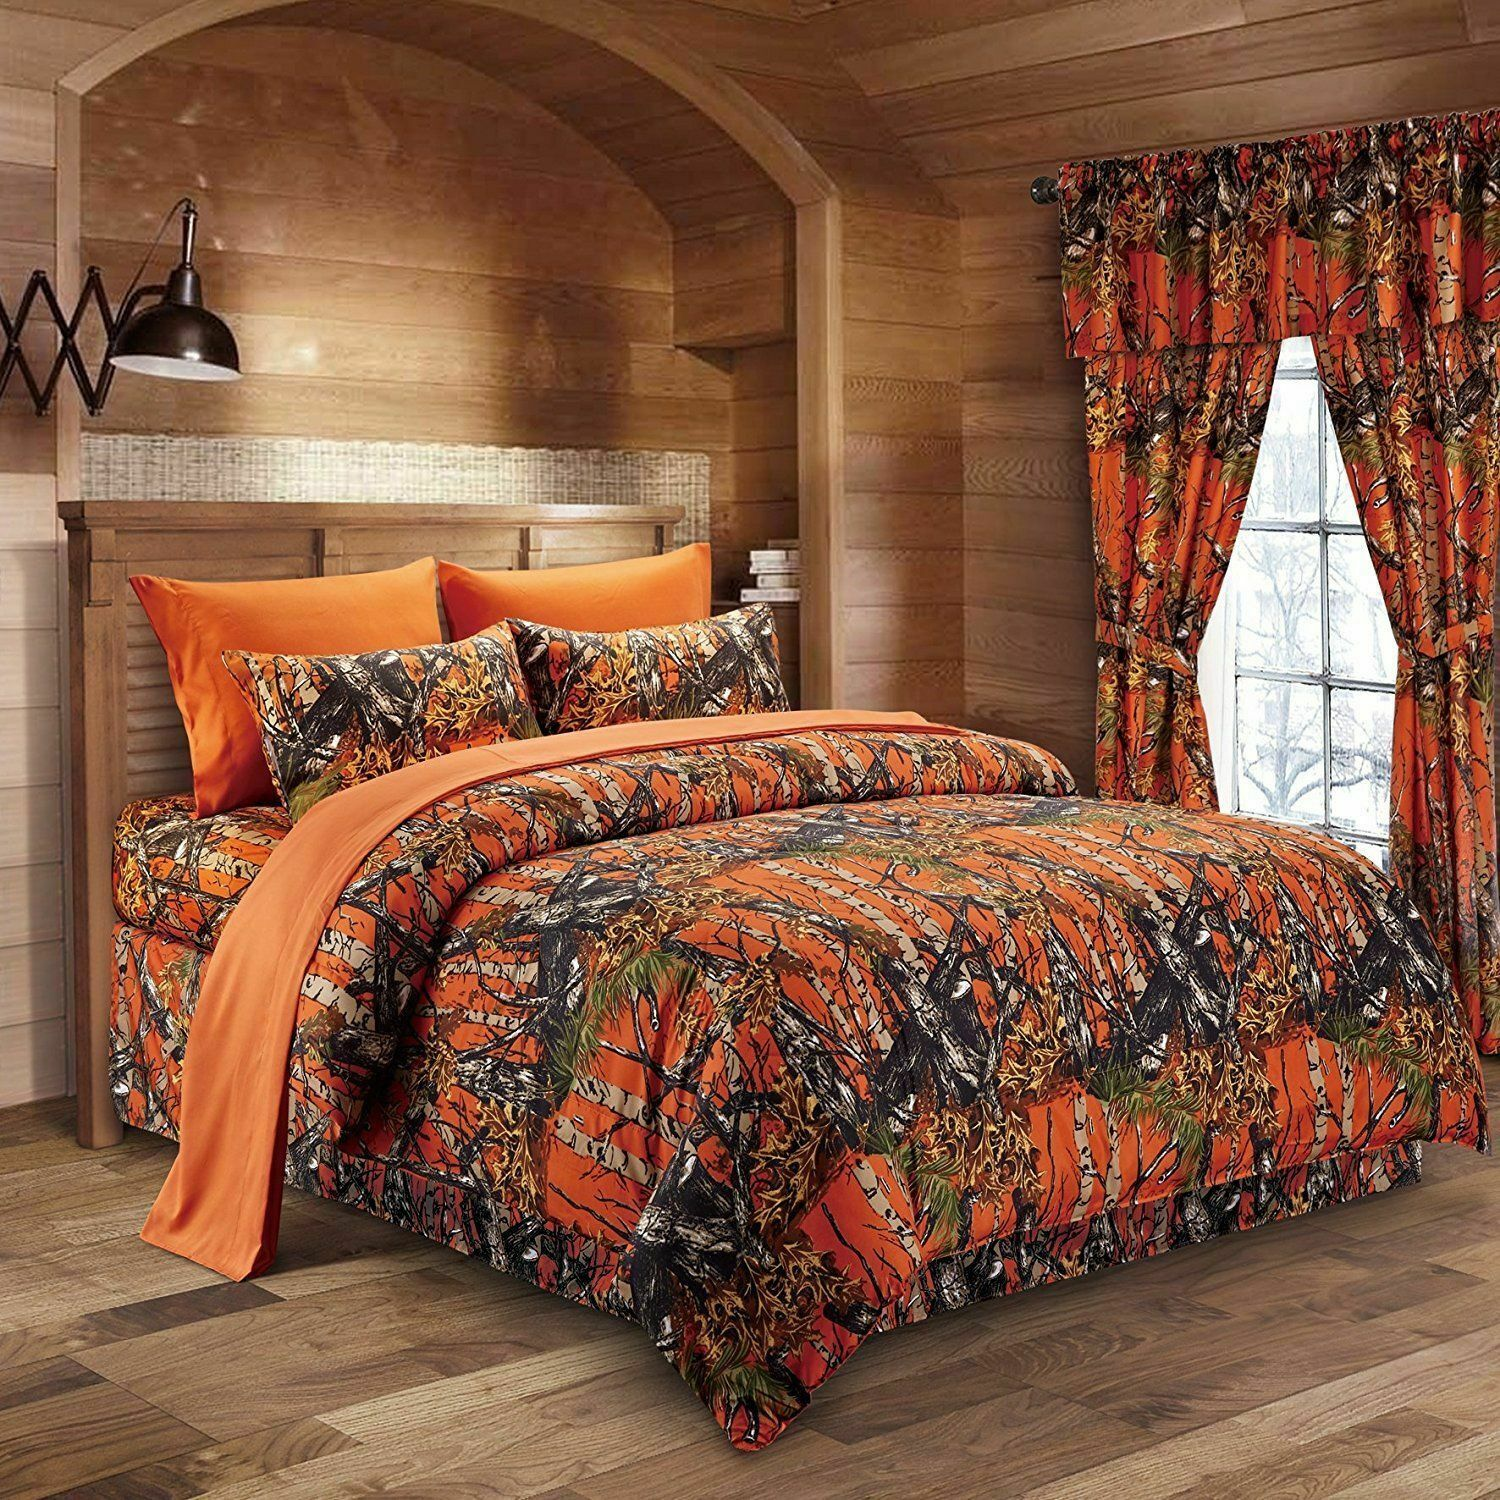 The Woods Camo orange 12 Piece King Size Comforter and Sheet Set with Curtains